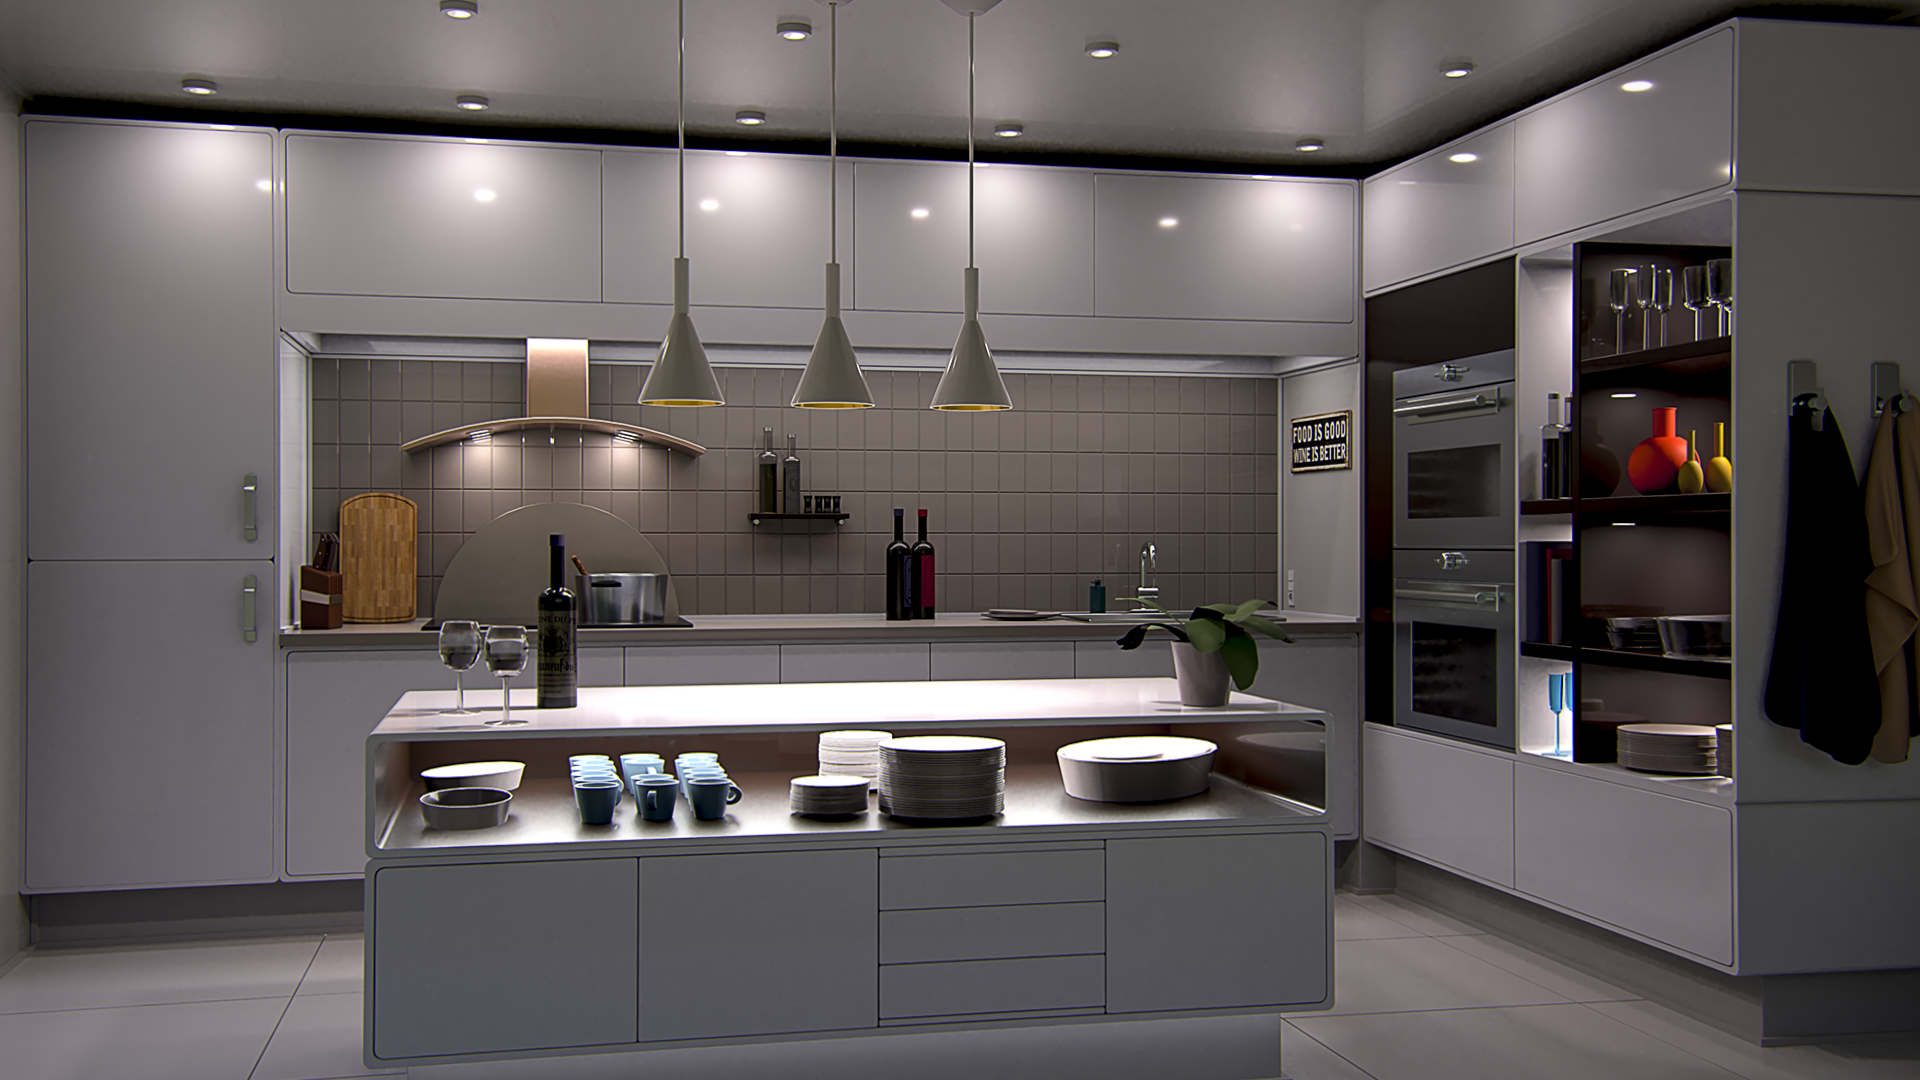 3D rendering of a kitchen